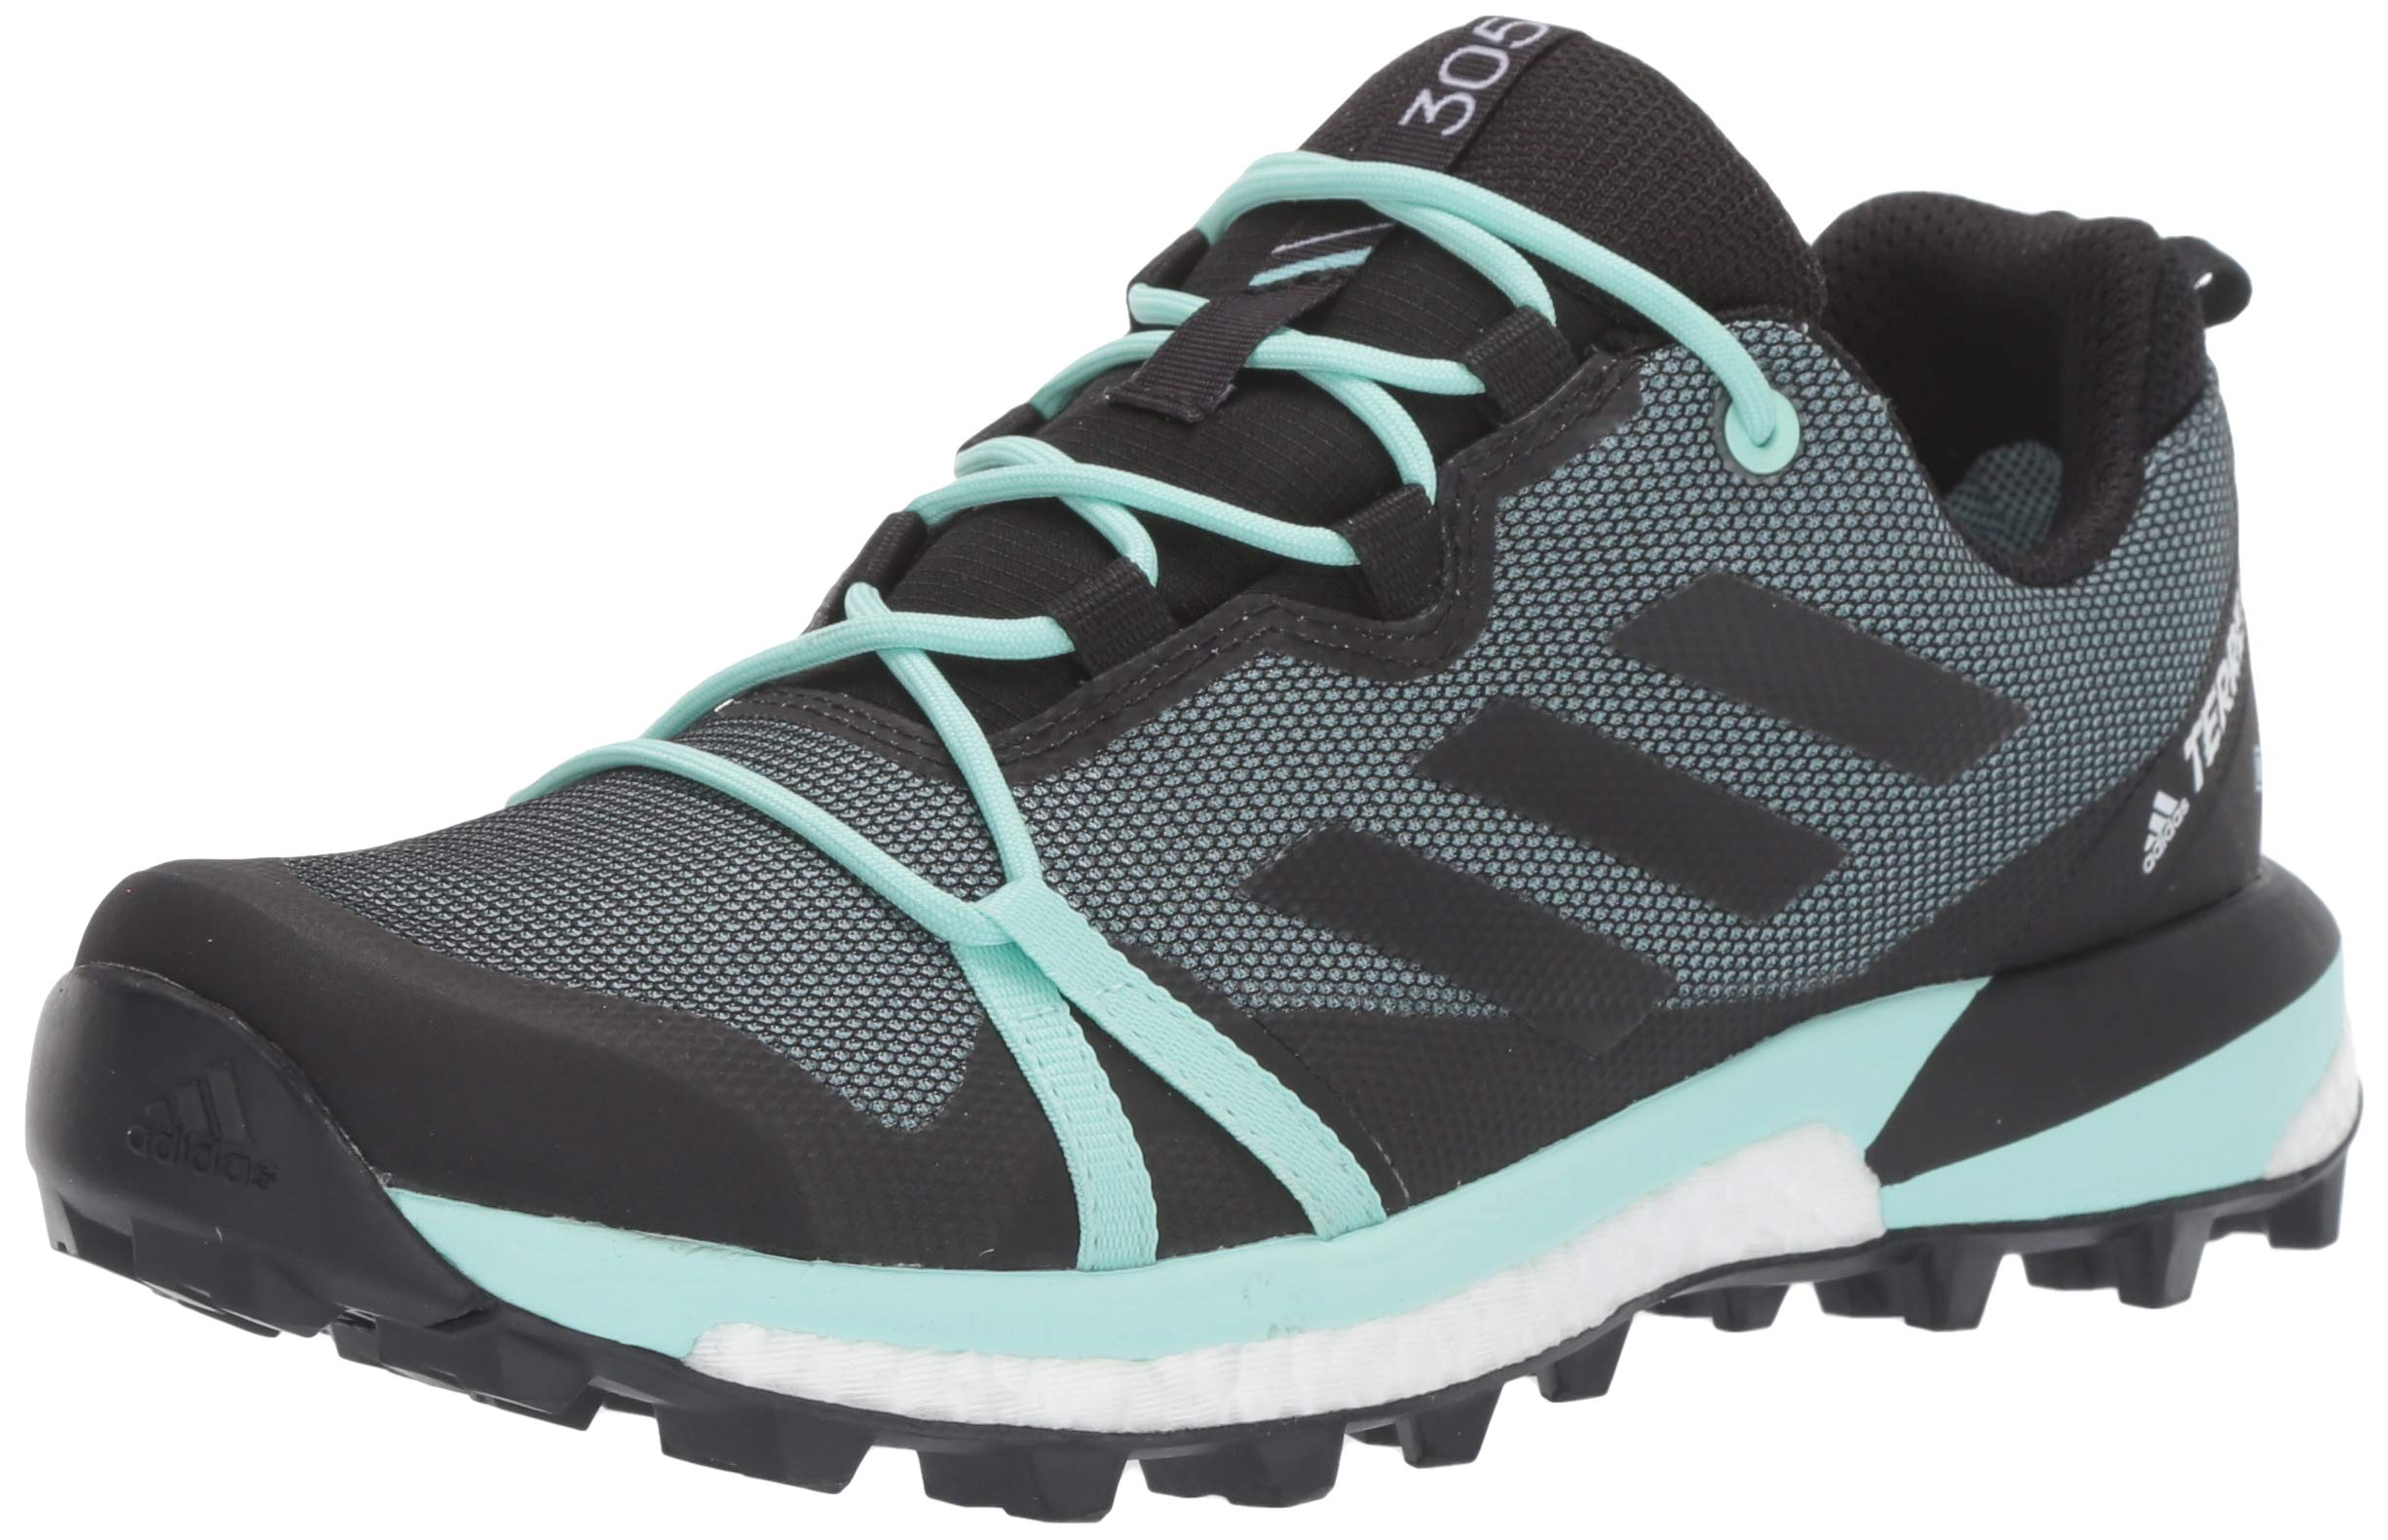 adidas outdoor Women's Terrex Skychaser LT GTX Athletic Shoe, ASH Grey/Black/Clear Mint, 5.5 M US by adidas outdoor